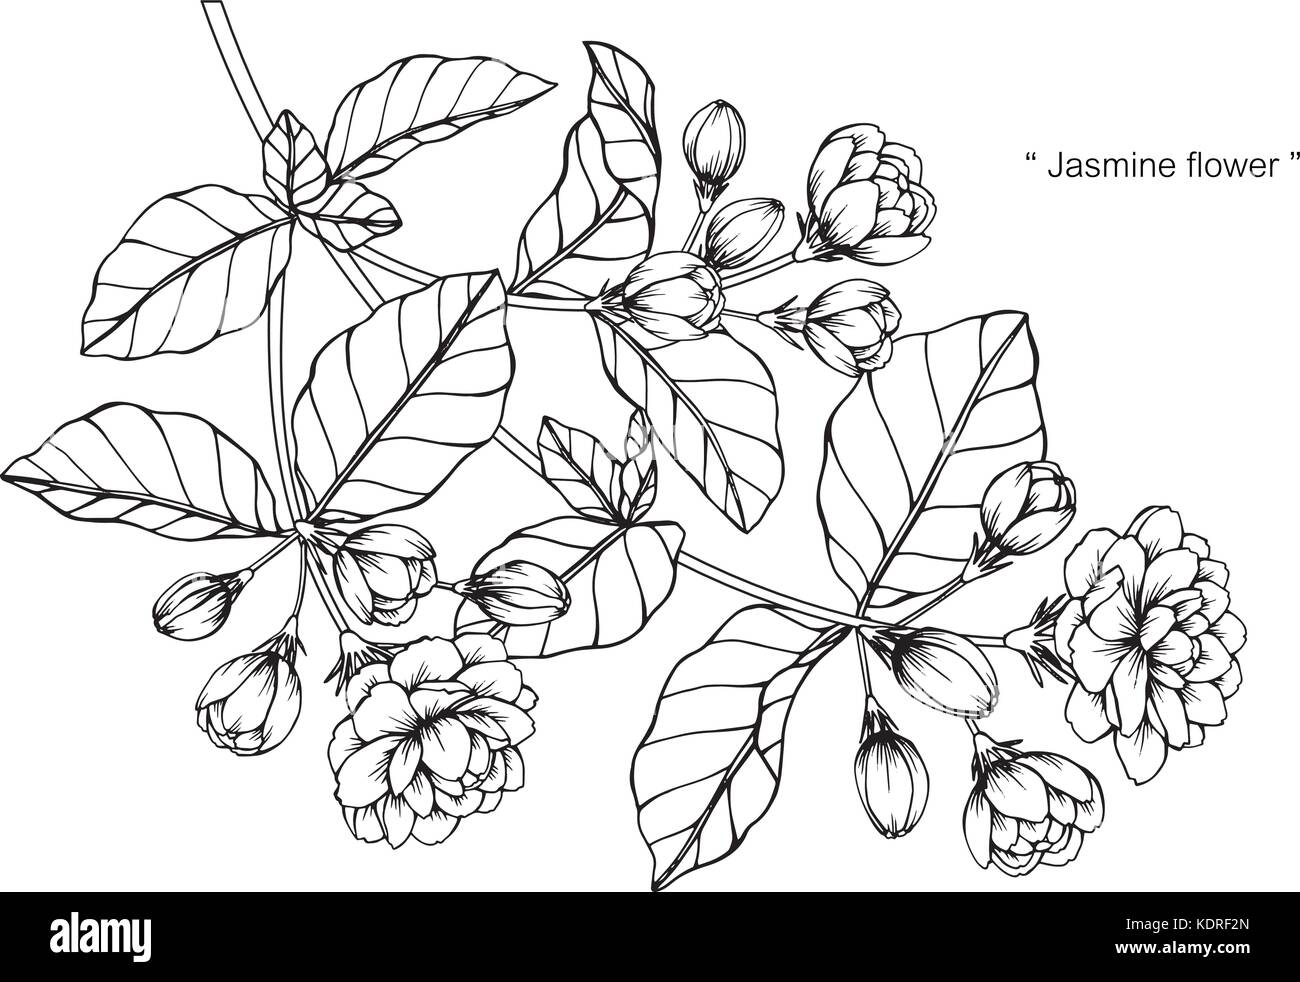 Jasmine Flower Drawing Illustration Black And White With Line Art